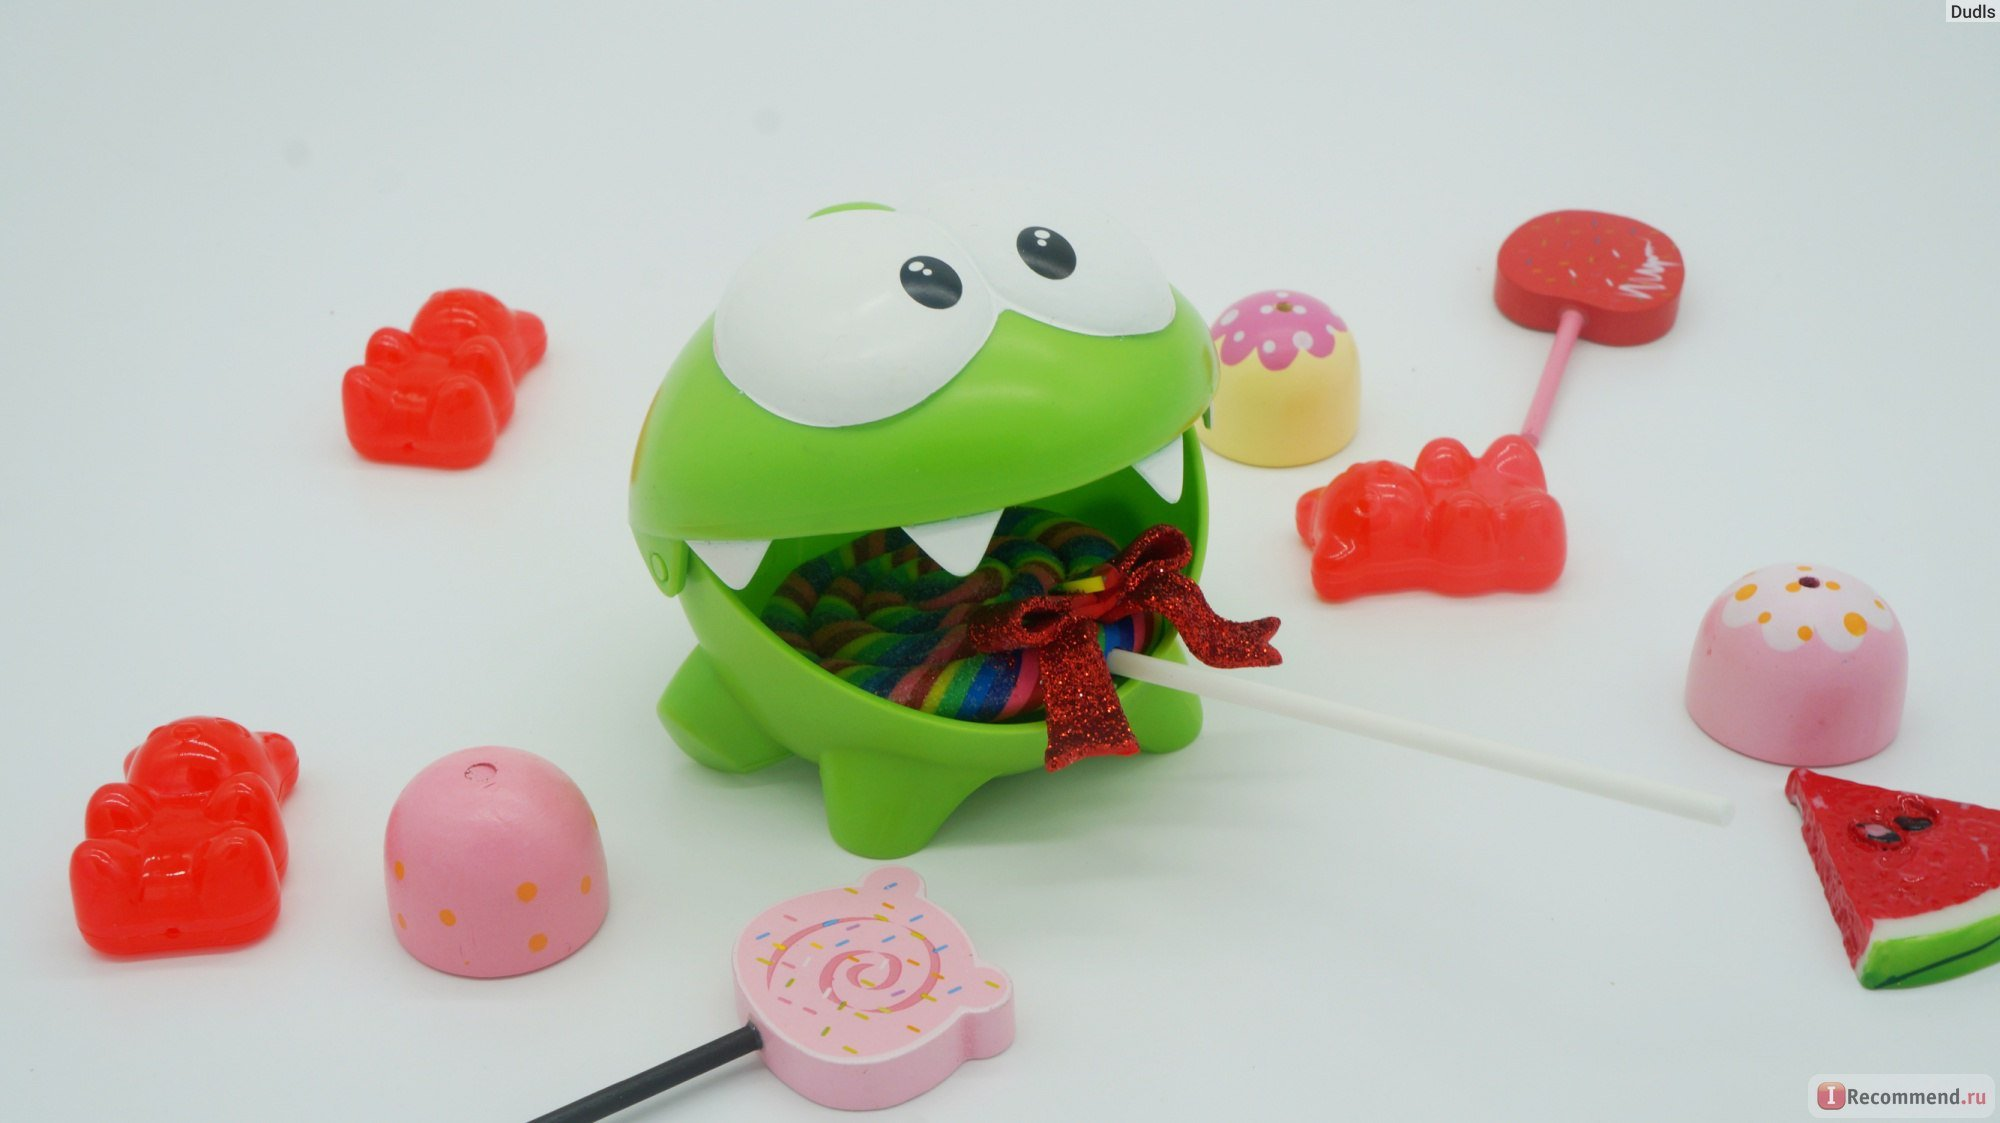 Om Nom СUT THE ROPE PLASTIC TOY Fruit Lunch box -Om Nom open mouth - Cut The Rope Figures-Cut the Rope Stuffed Animal-Cut The Rope Toys - Nommies-om nom frog-cut the rope magic -Om-nom Figure Plastic by OPTOVICHOK